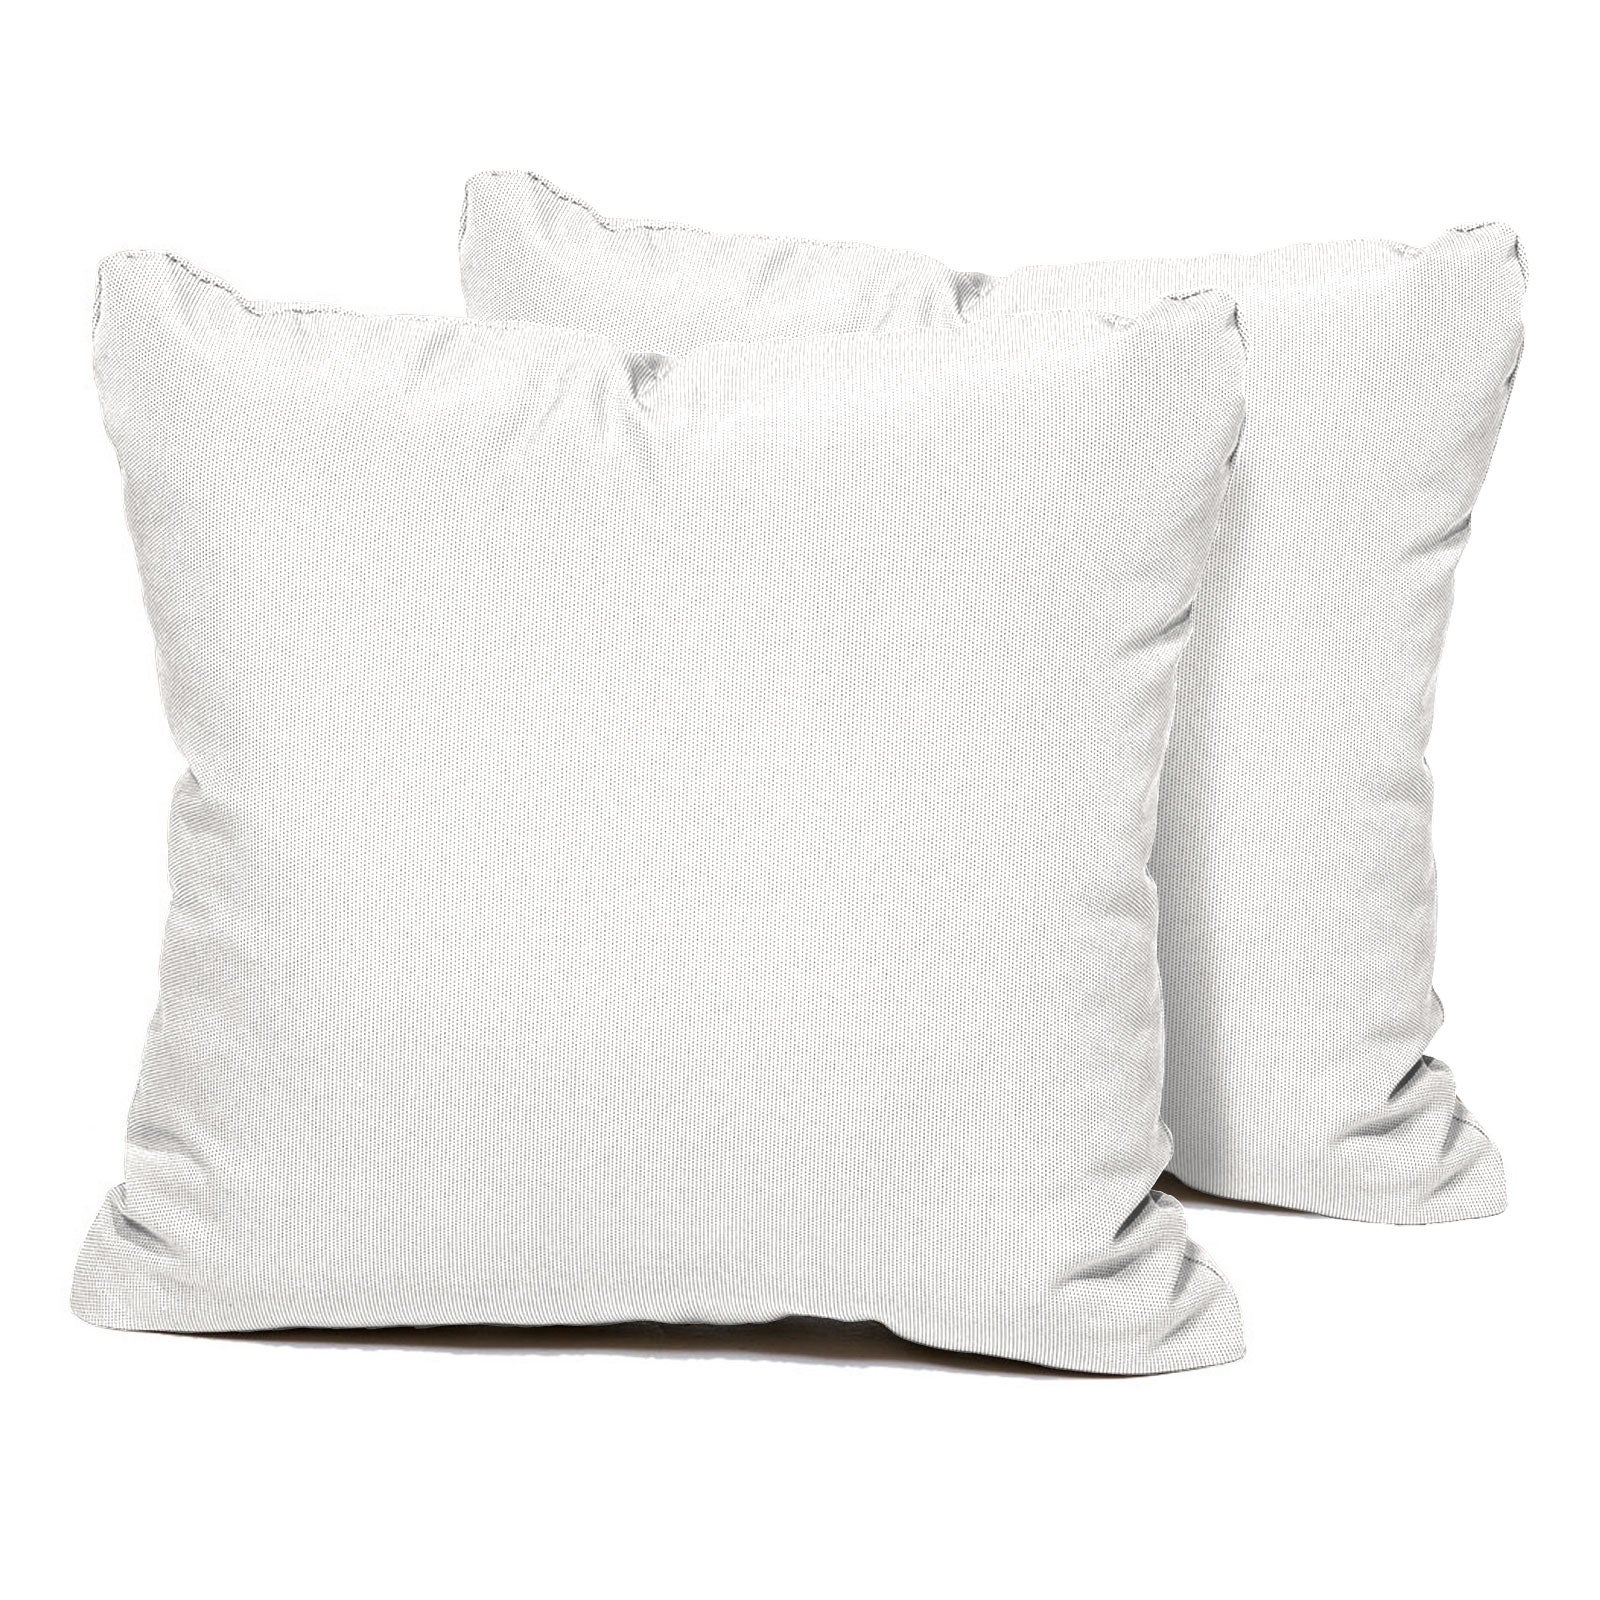 Sail White Outdoor Throw Pillows Square Set Of 2 Free Shipping On Orders Over 45 19420088